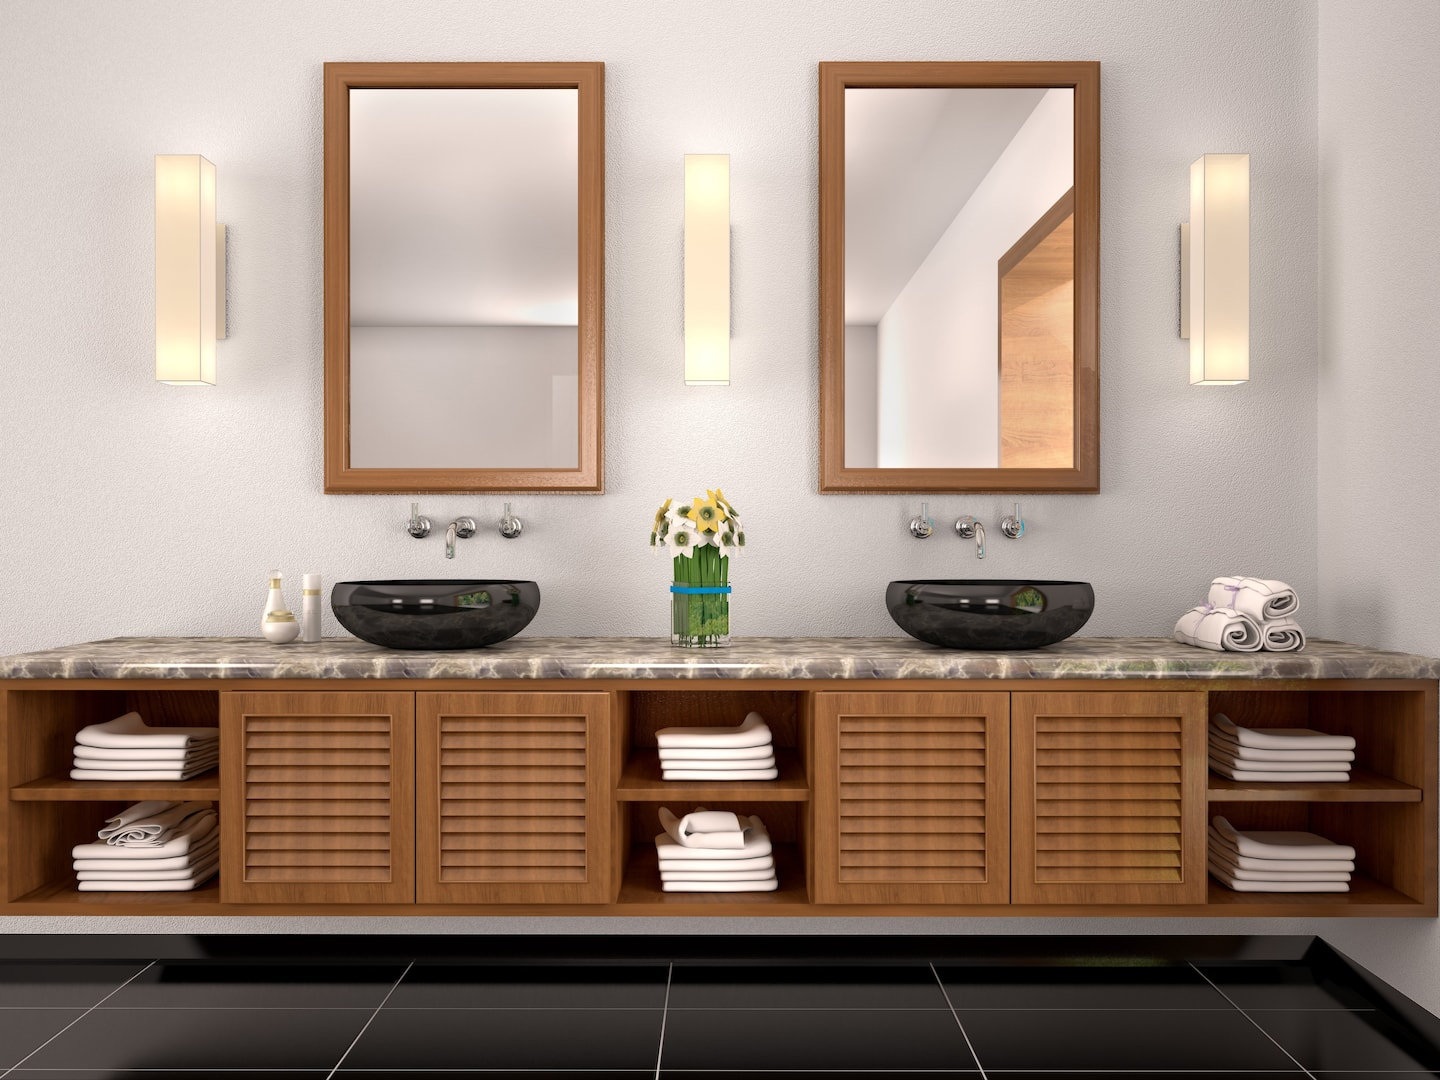 3d Illustration Of Double Sink In The Bathroom Mediterranean Style